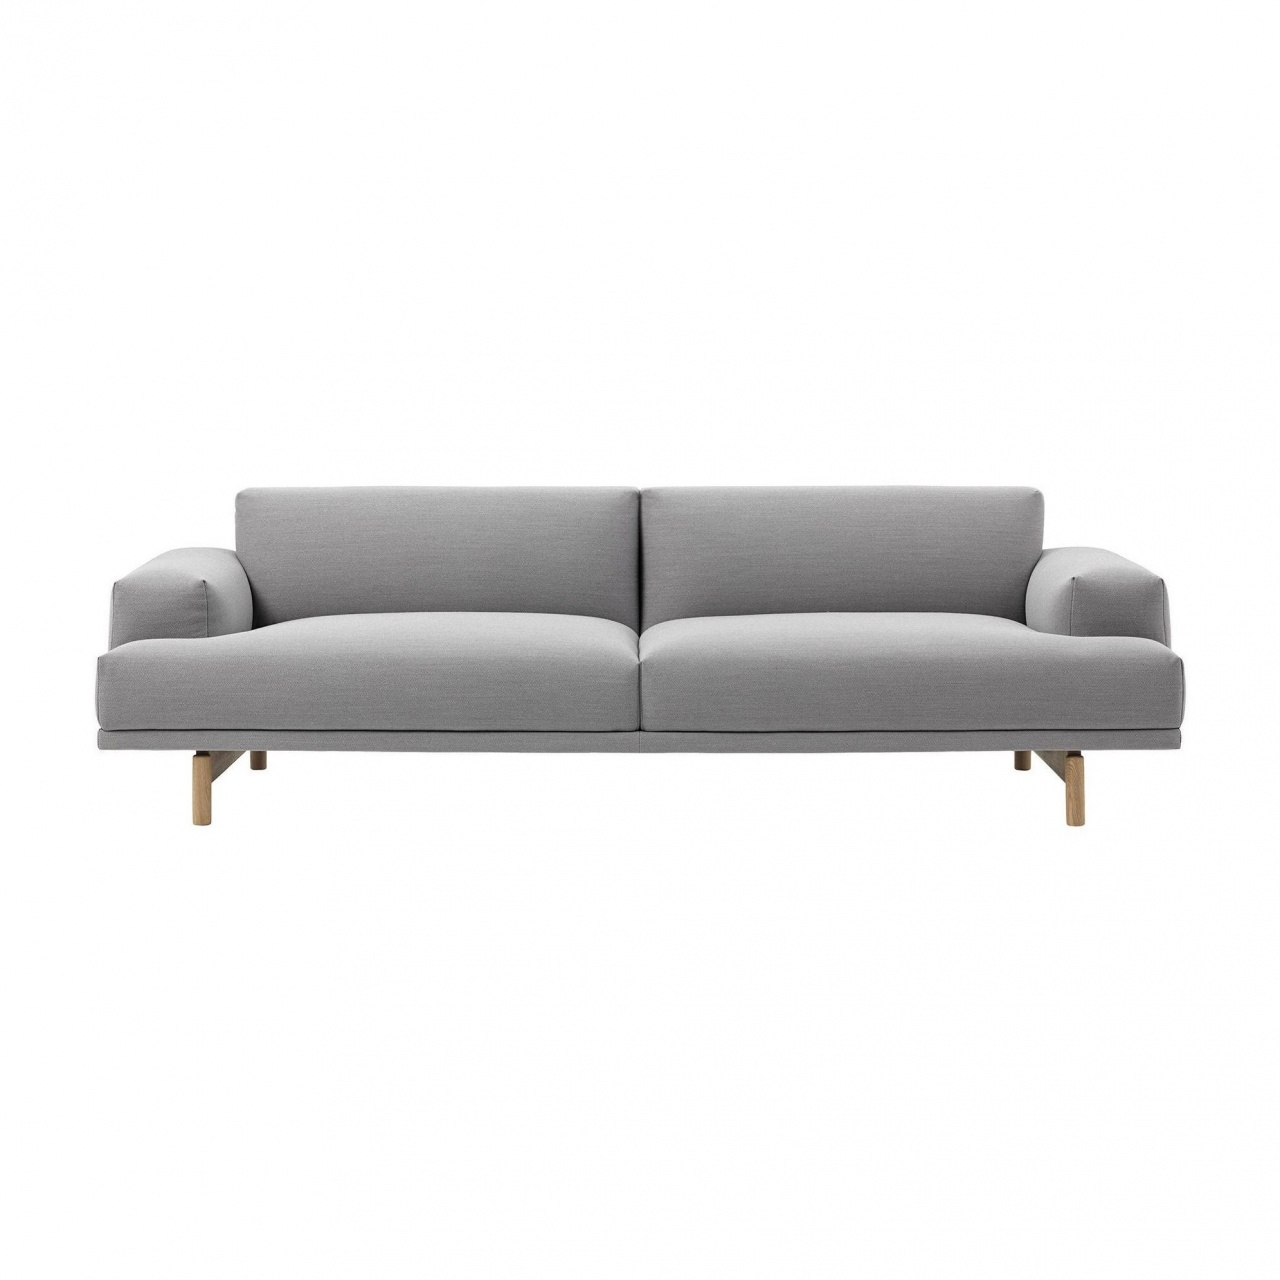 difference between sofa and loveseat muuto pose 3 sitzer sofa from difference between sofa and loveseat